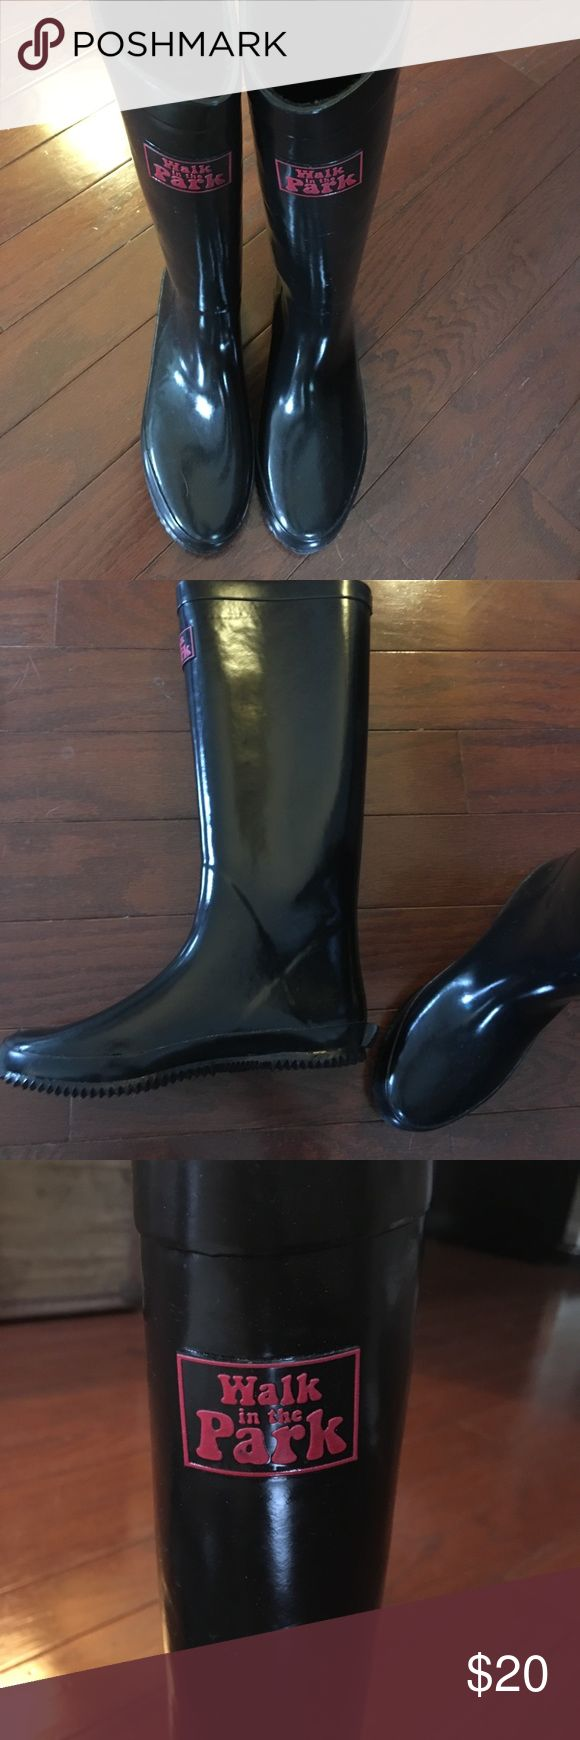 Black Rubber Rain Boots with Fleece Lining Walk in the Park boots - worn only once and looks brand new!! Soft fleece interior Walk in the Park Shoes Winter & Rain Boots